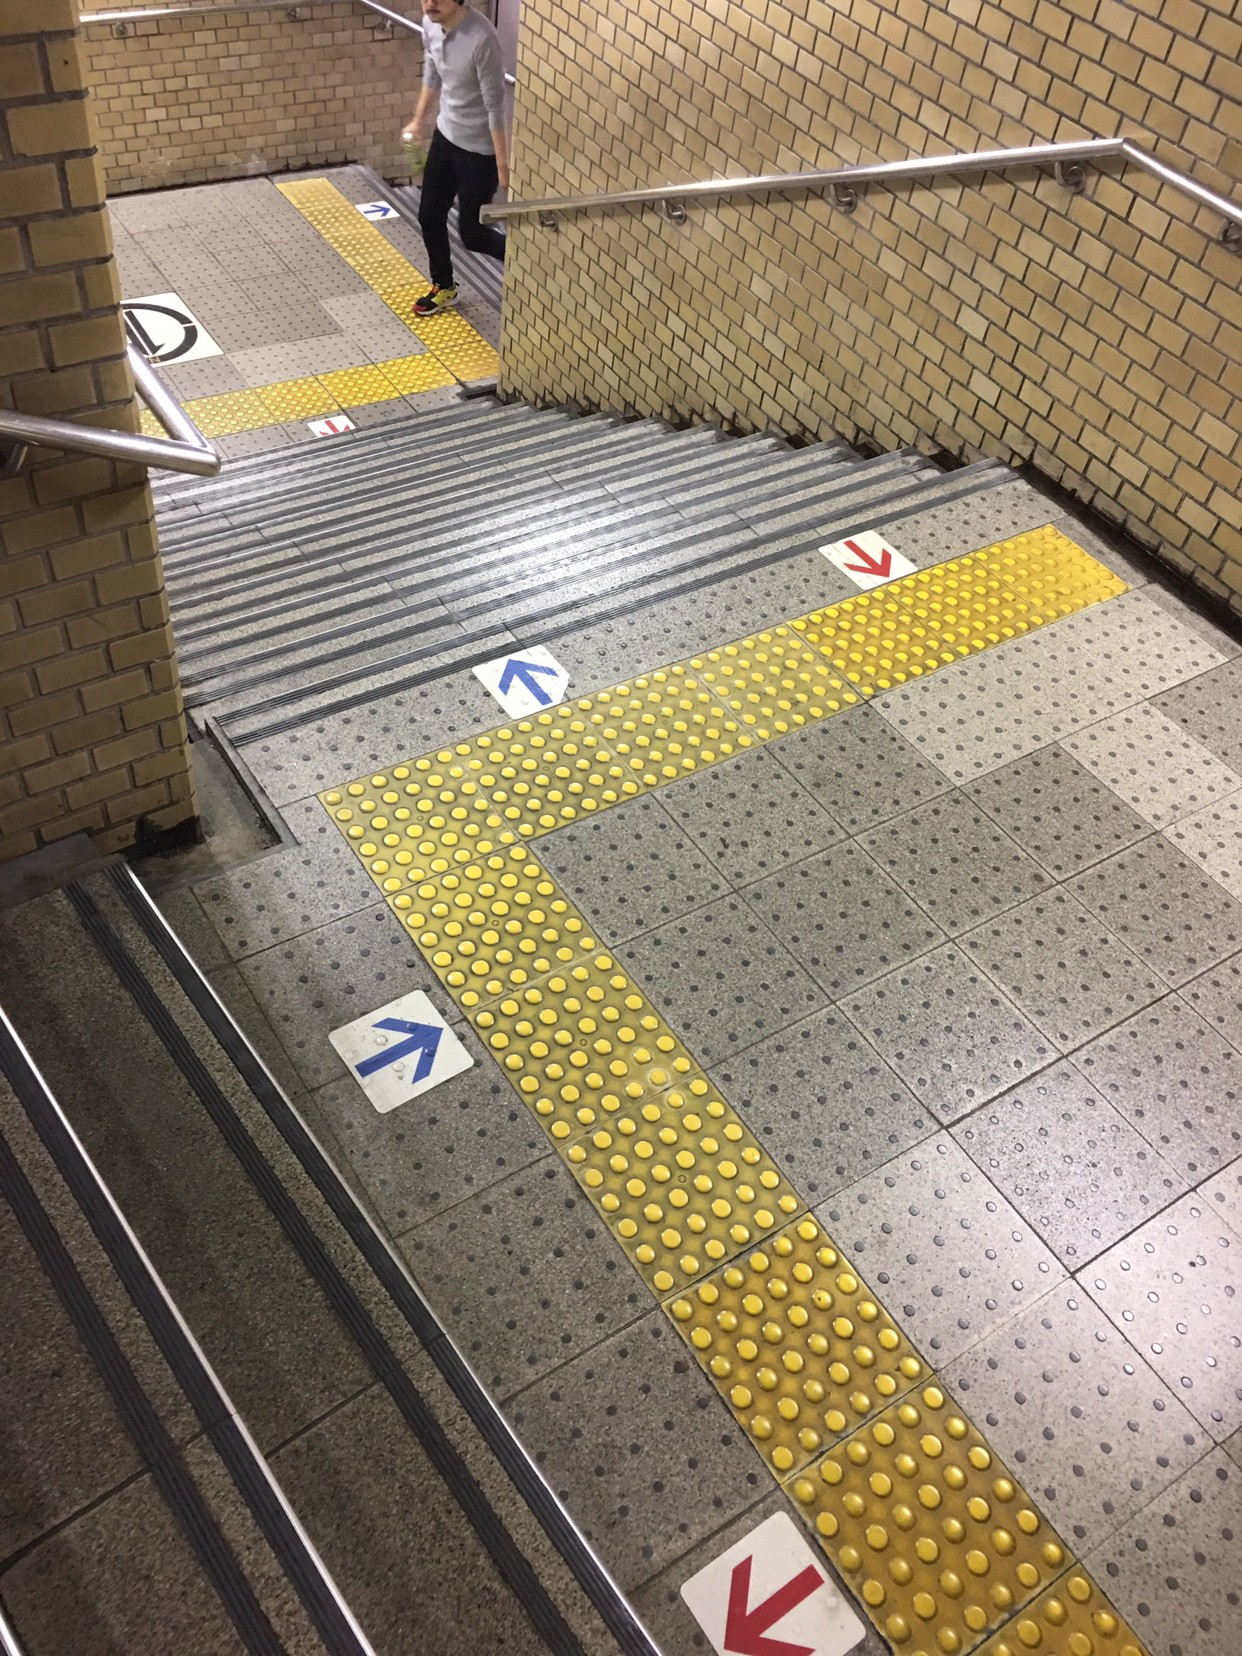 What Tokyo's metro taught me about progressive disclosure